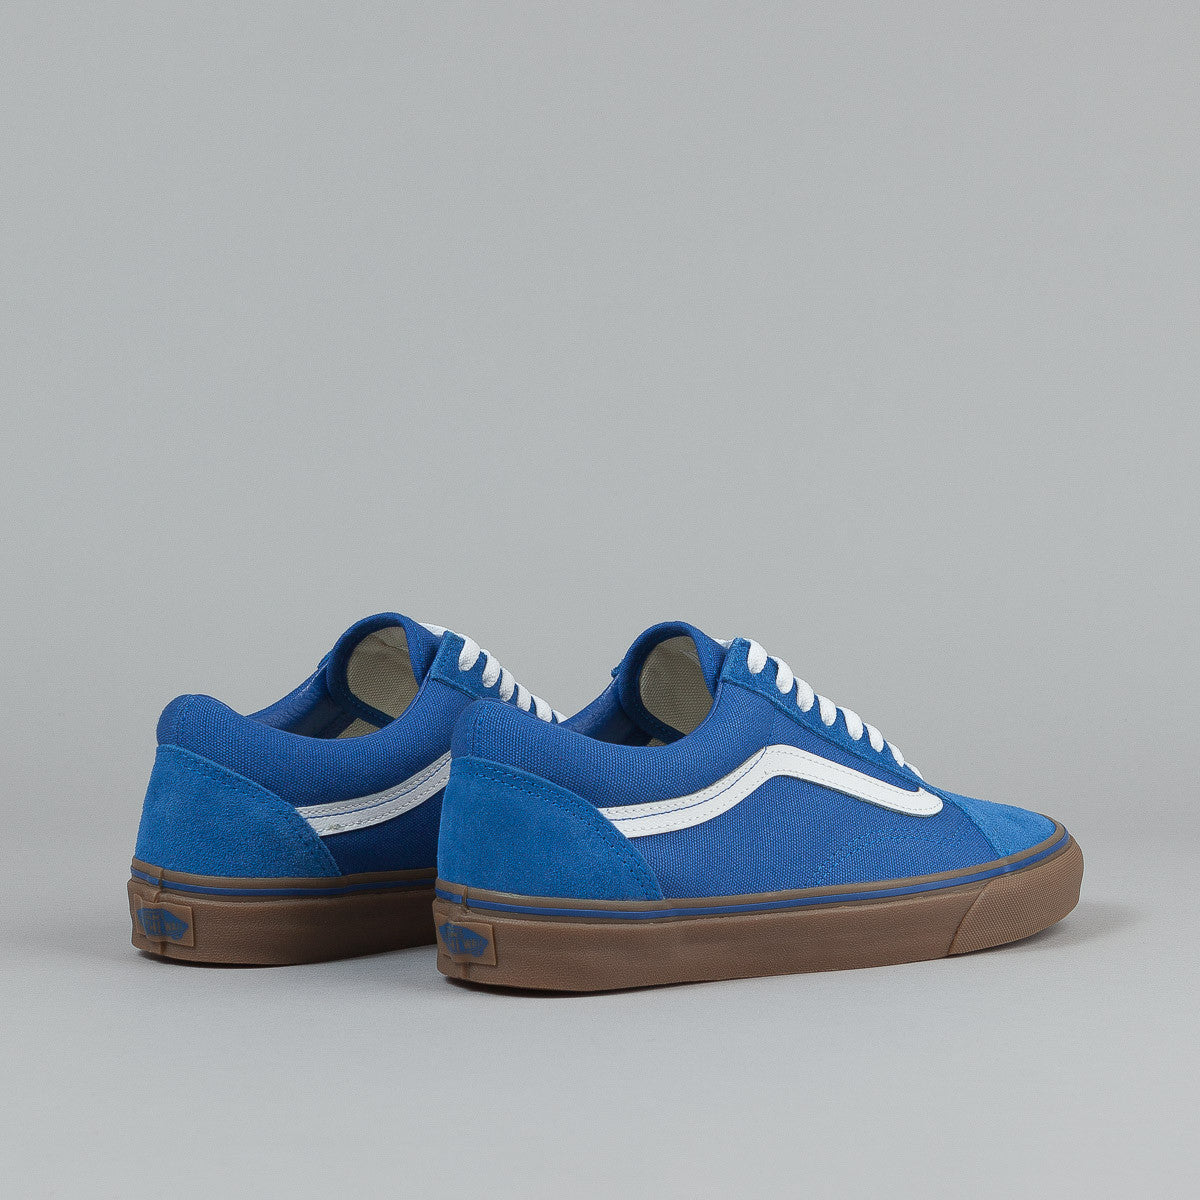 Vans Old Skool Shoes - (Gumsole) Olympian Blue / Medium Gum